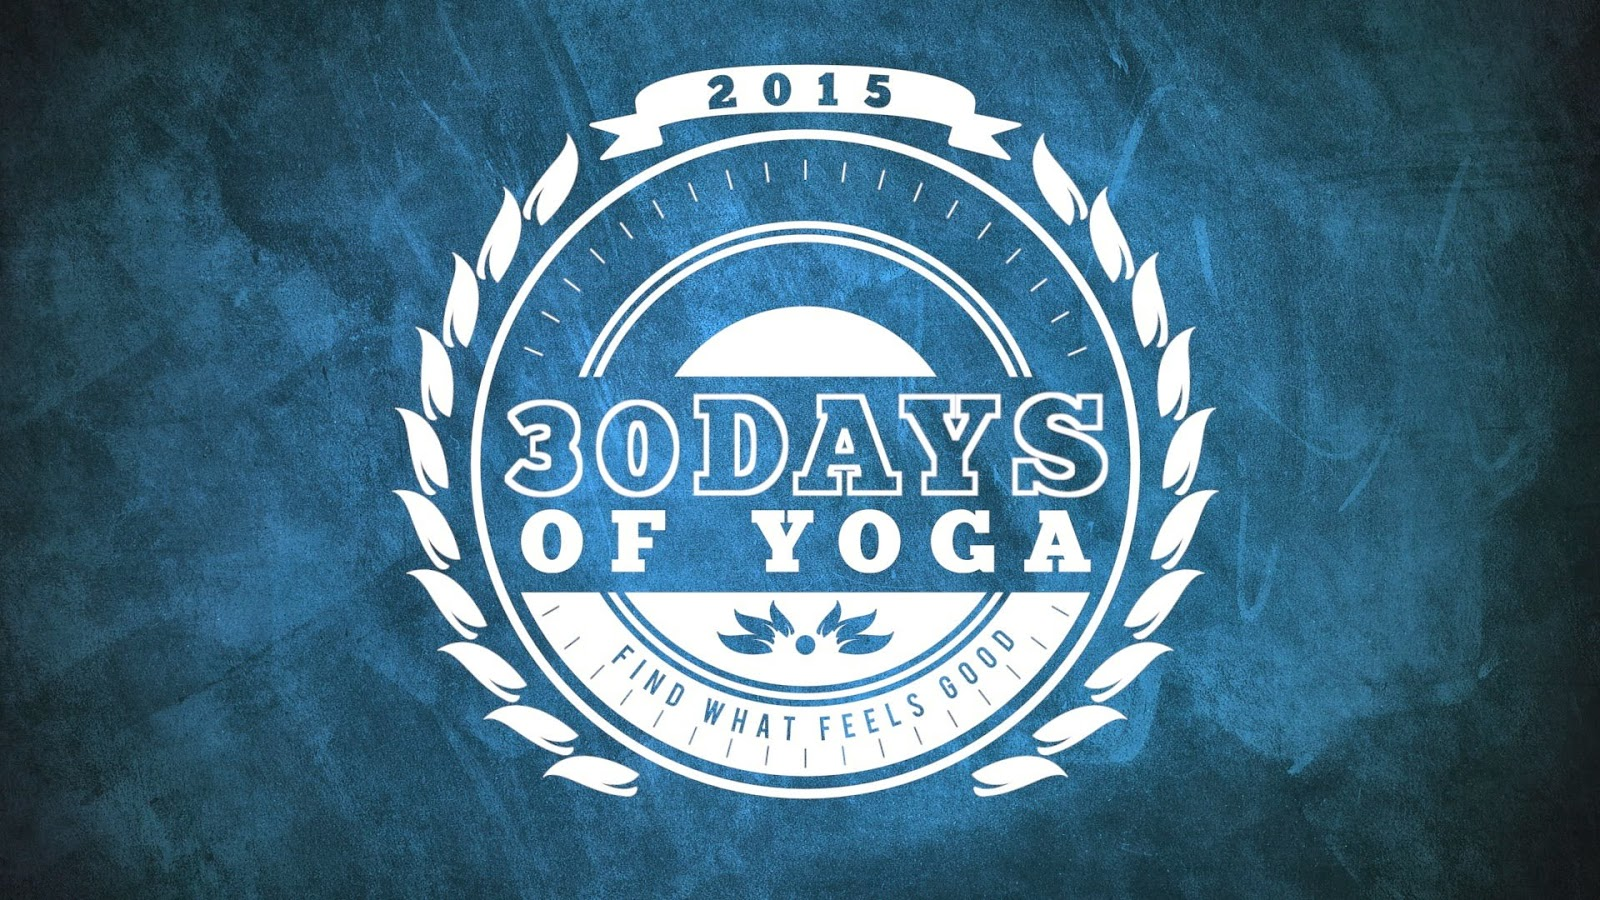 30 Days of Yoga